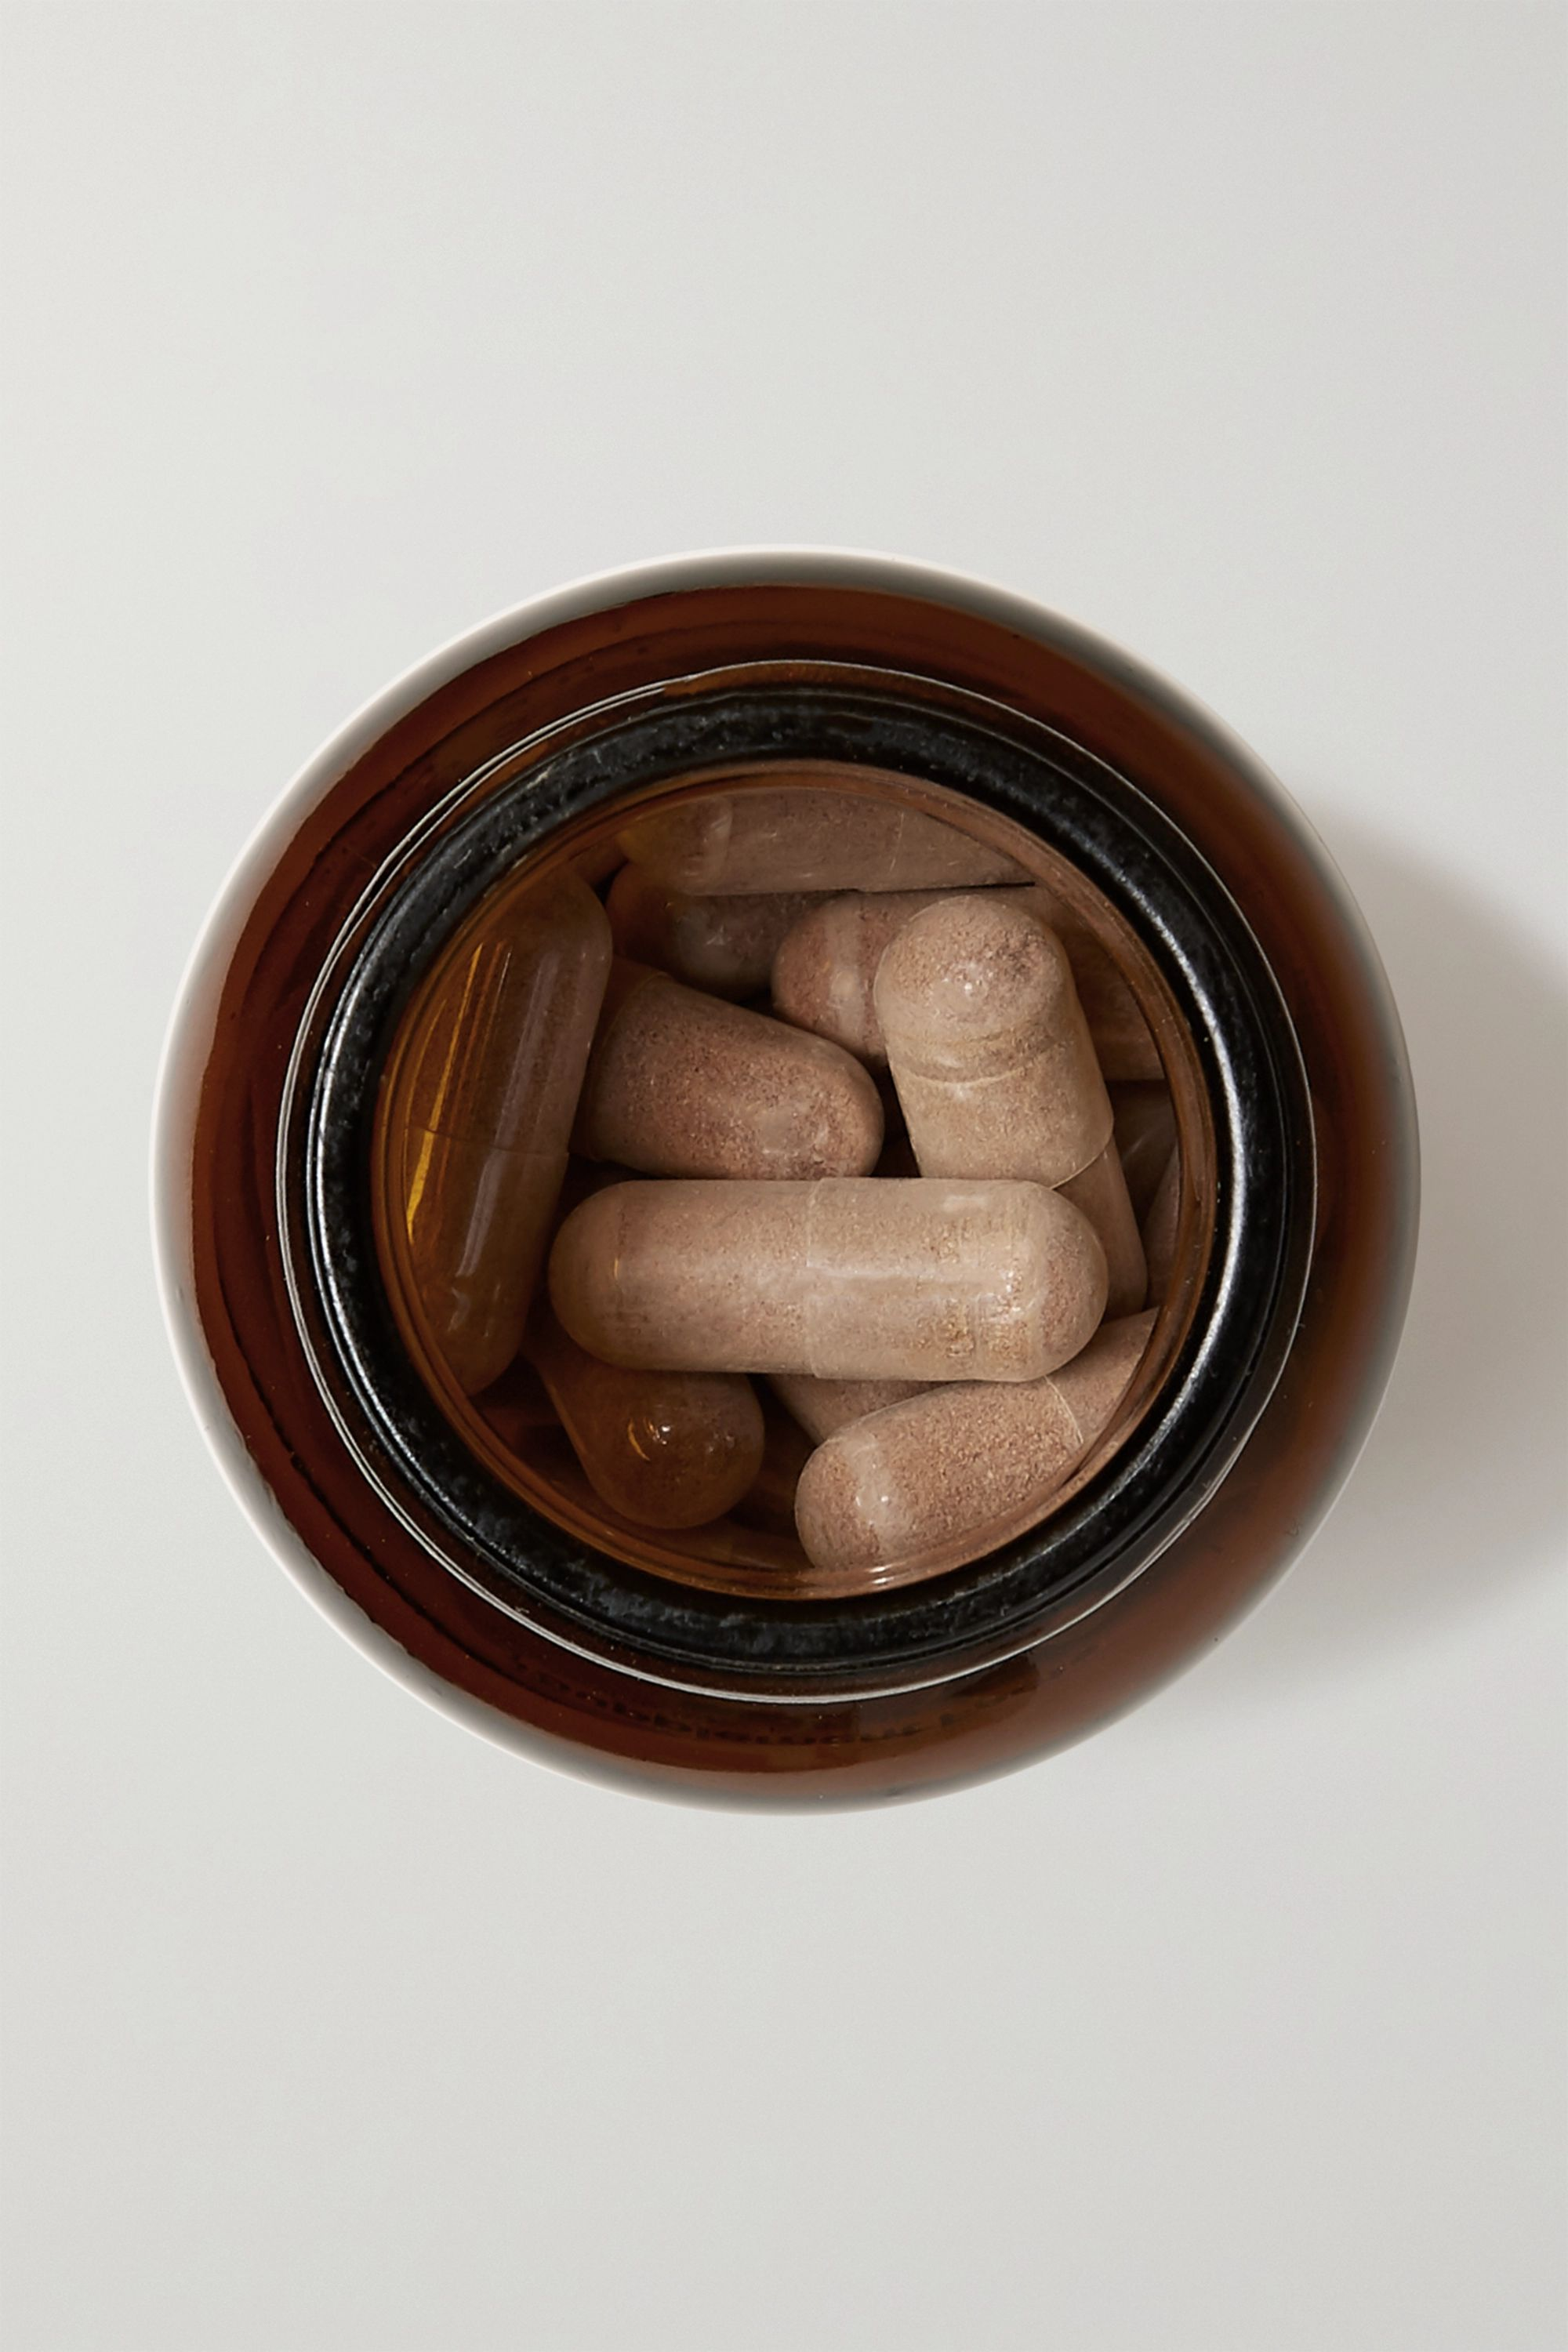 The Nue Co. Skin Filter (30 capsules)